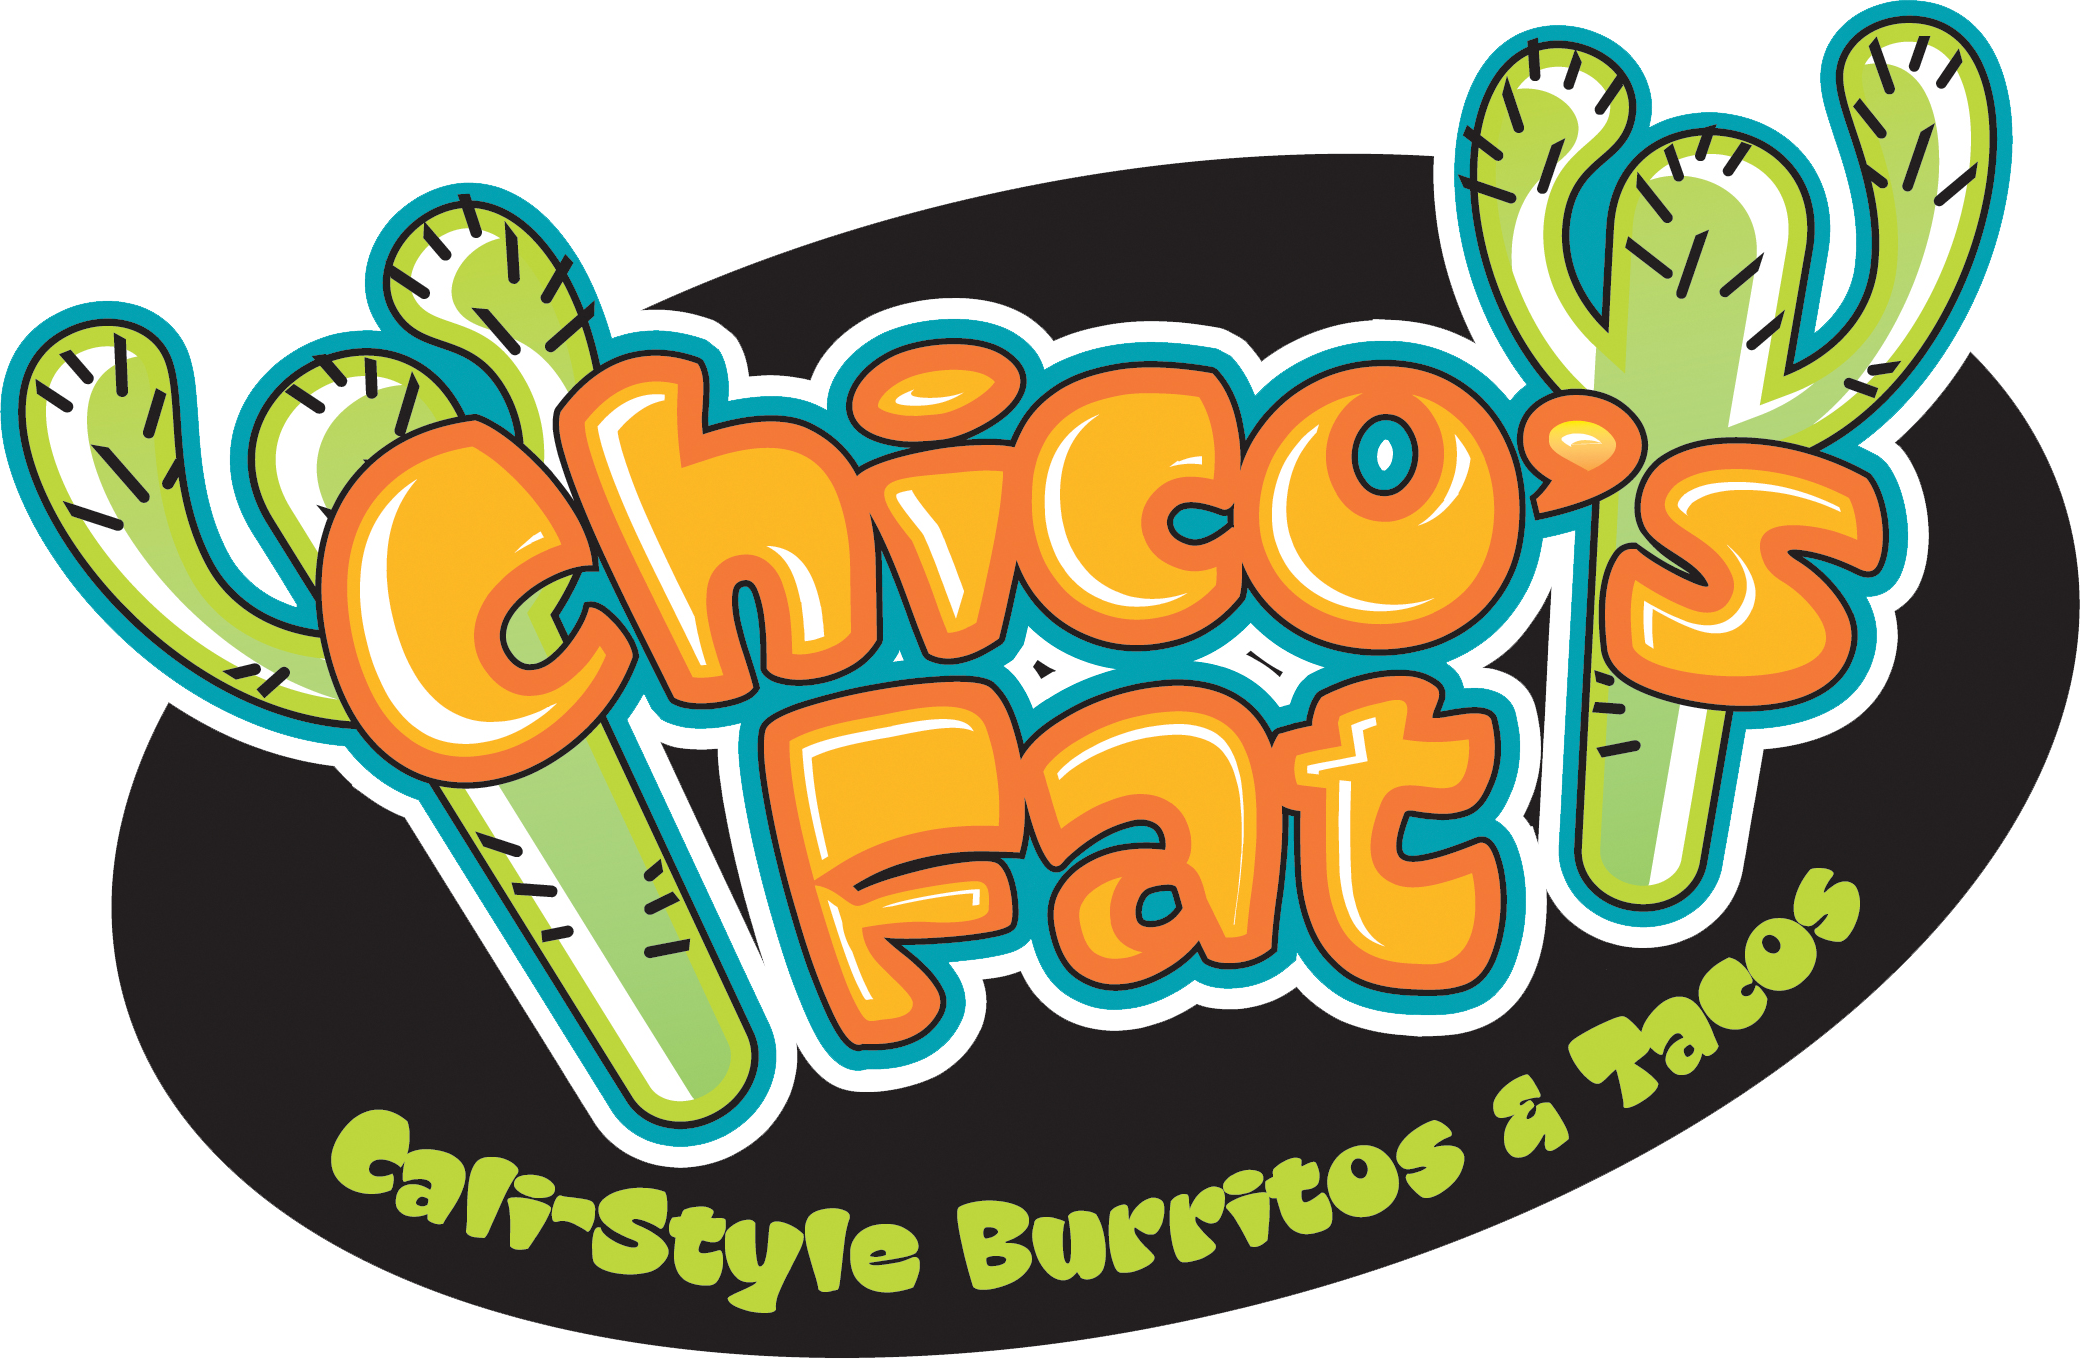 Fat mexican png. Chico s burritos expandedlogo